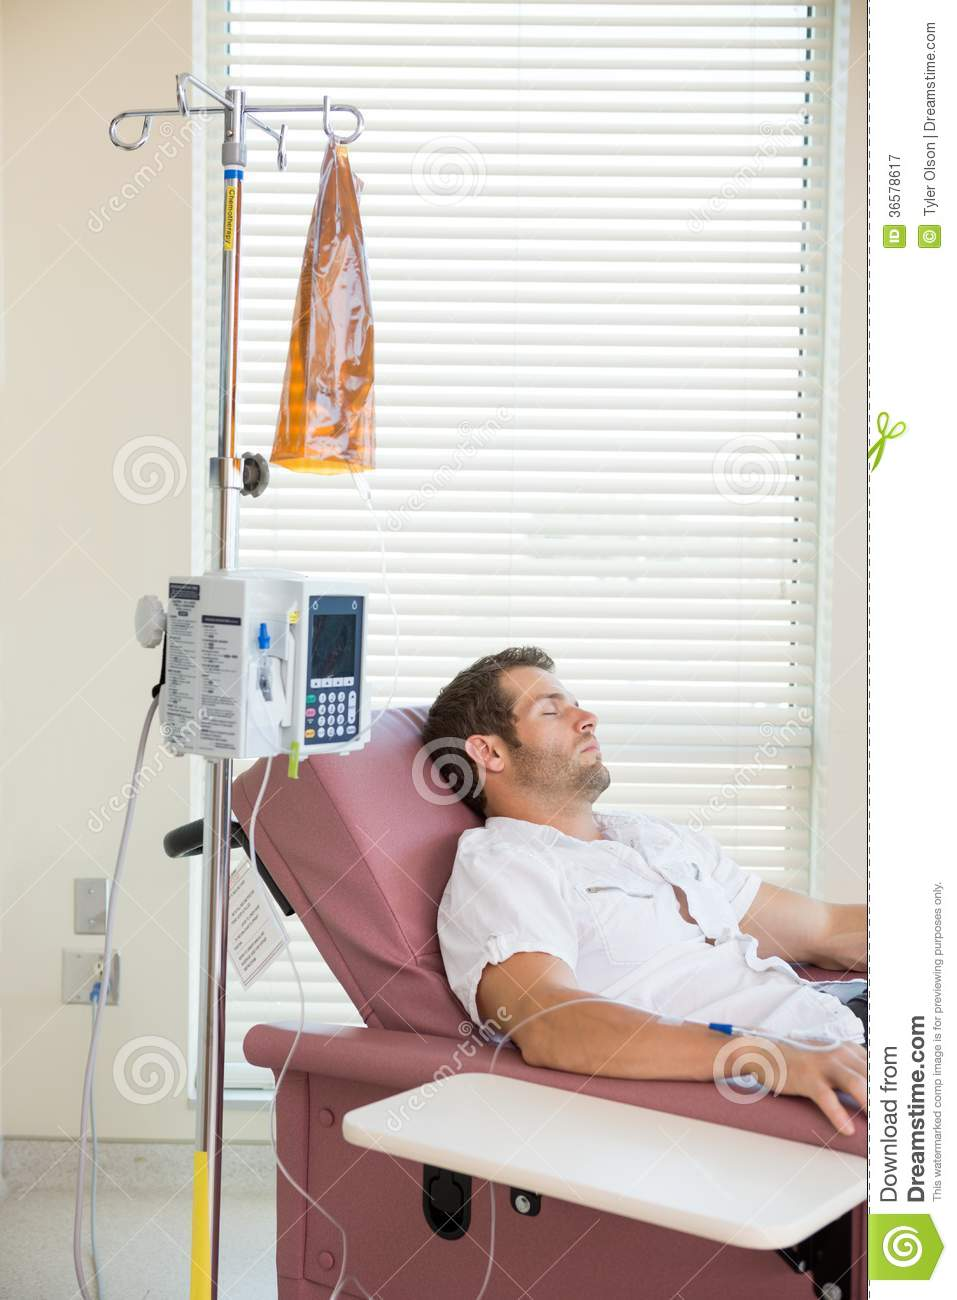 Chemotherapy Room Design: Patient Sleeping While Receiving Chemotherapy Royalty Free